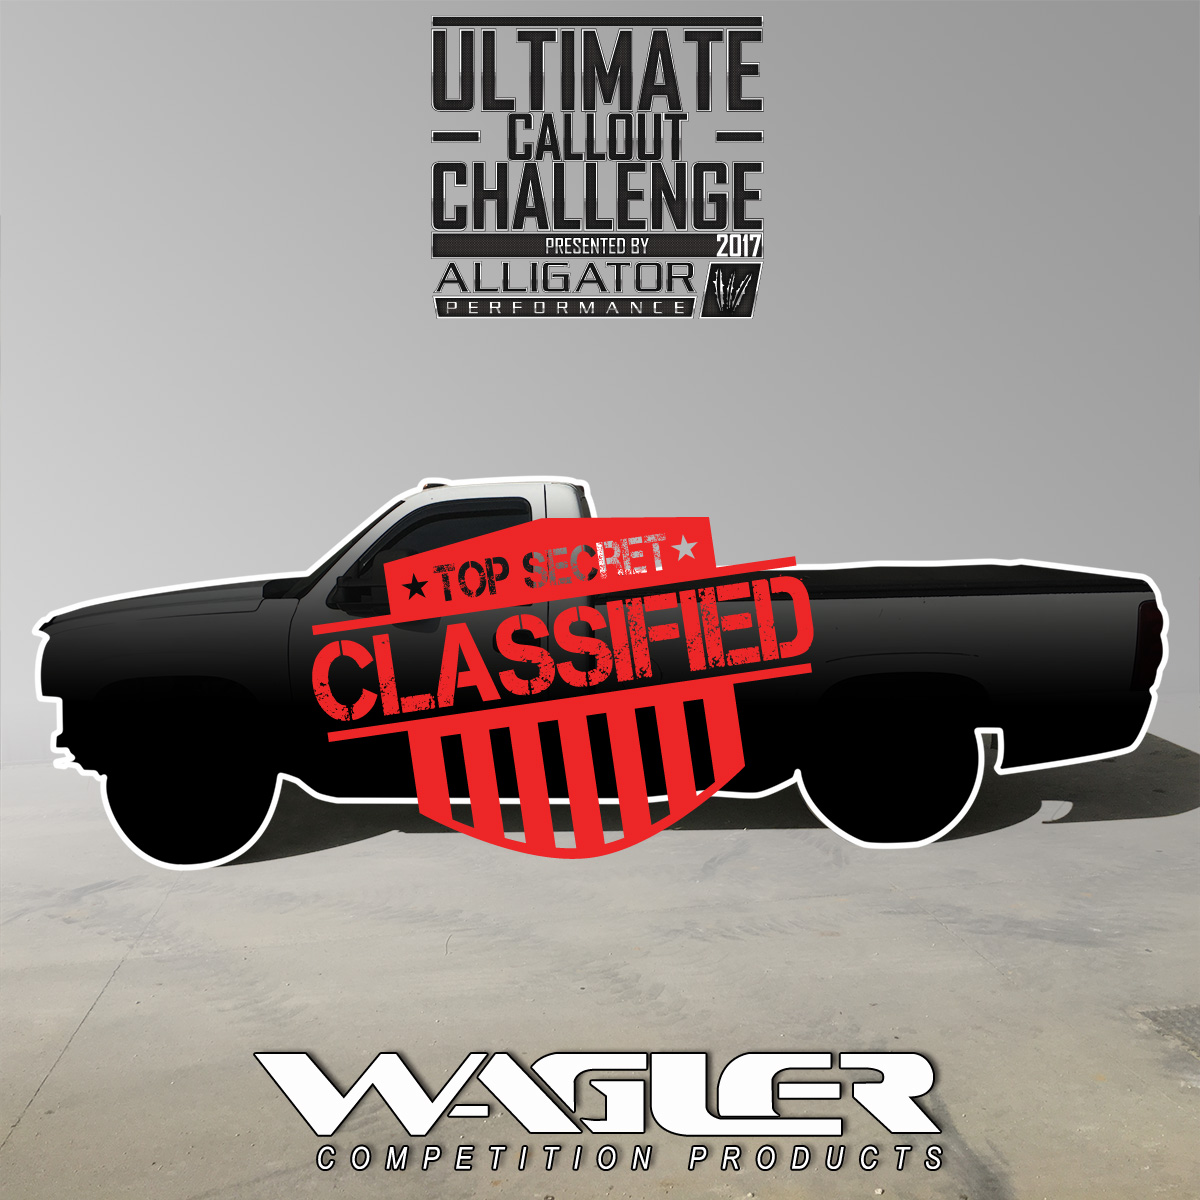 Jeremy Wagler - Wagler Competition Products 2017 Ultimate Callout Challenge Competitor